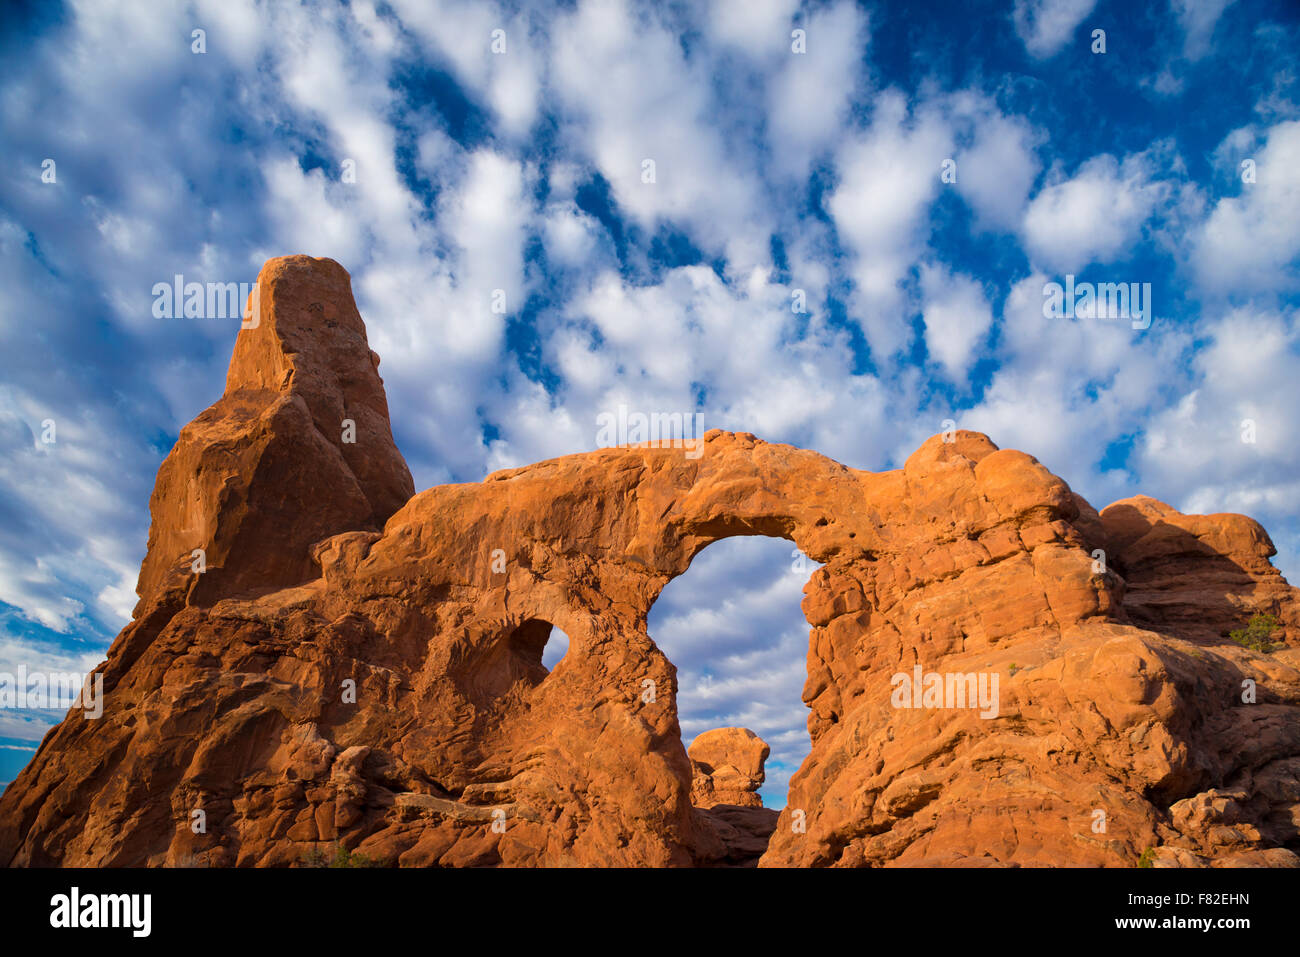 Morning clouds at Turret Arch, Arches National Park, Utah, Windows Section - Stock Image